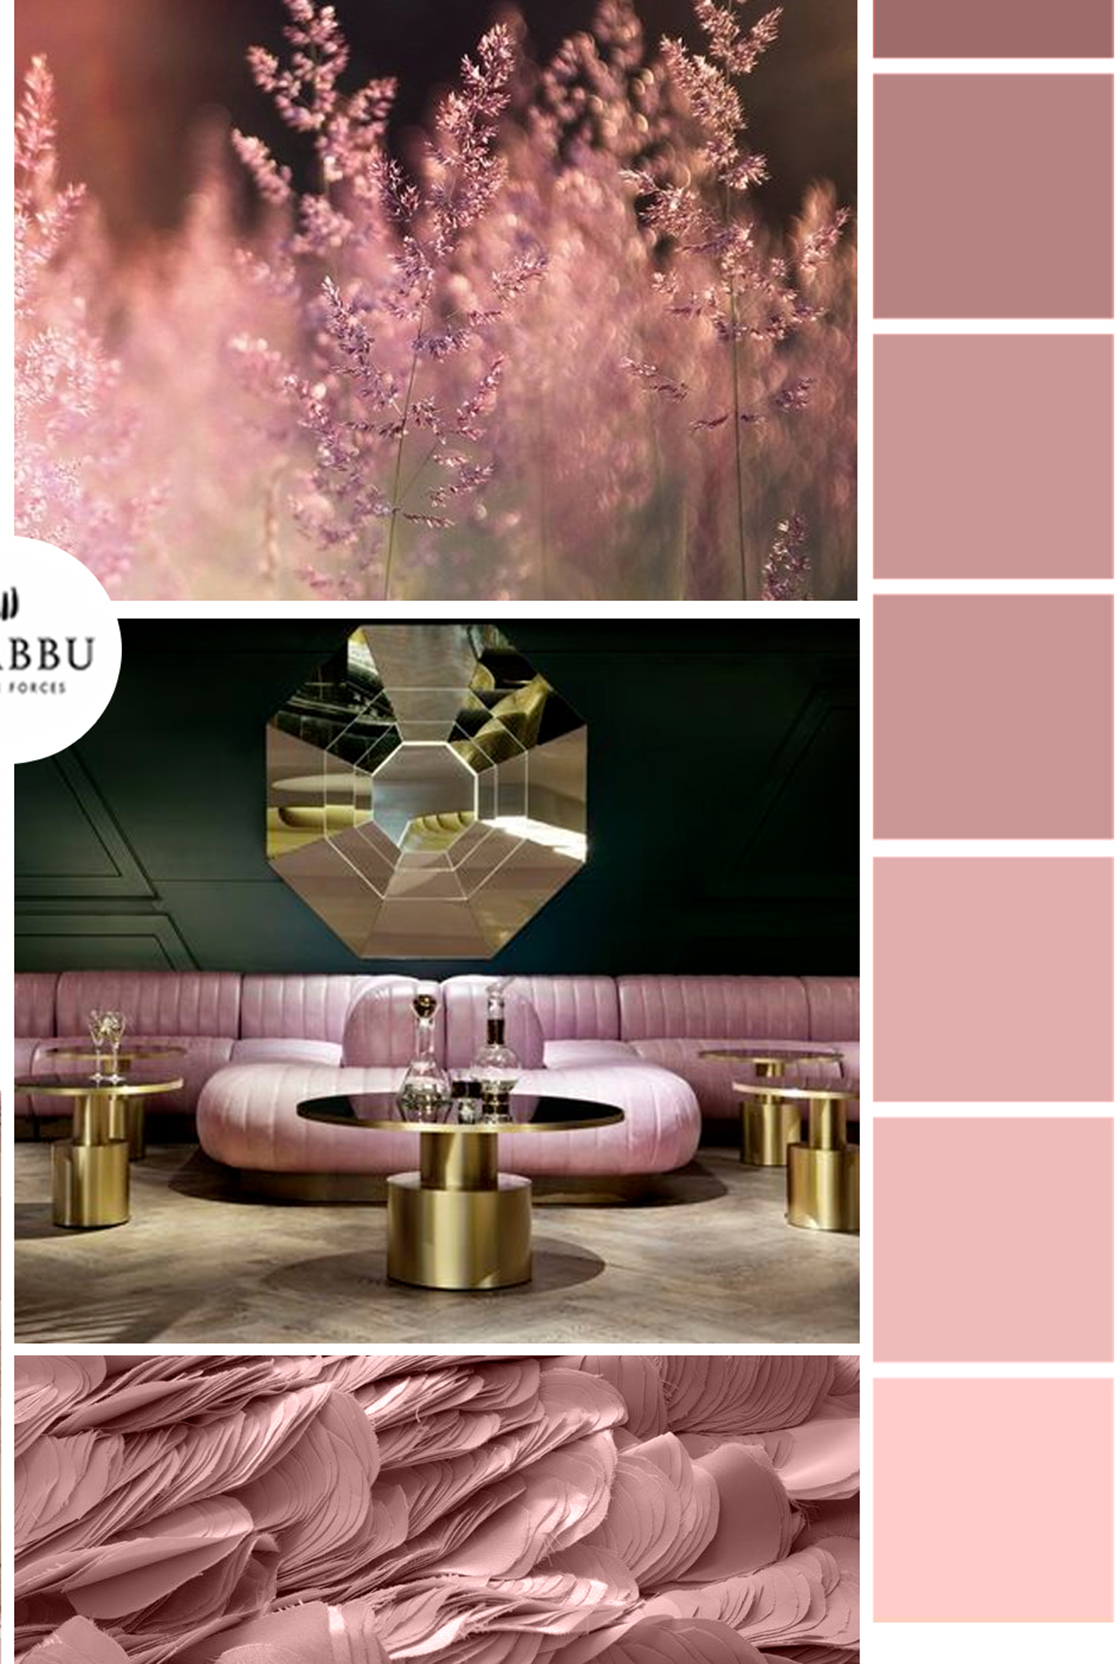 How To Decorate With Millennial Pink: The Stylish Color Of The Moment